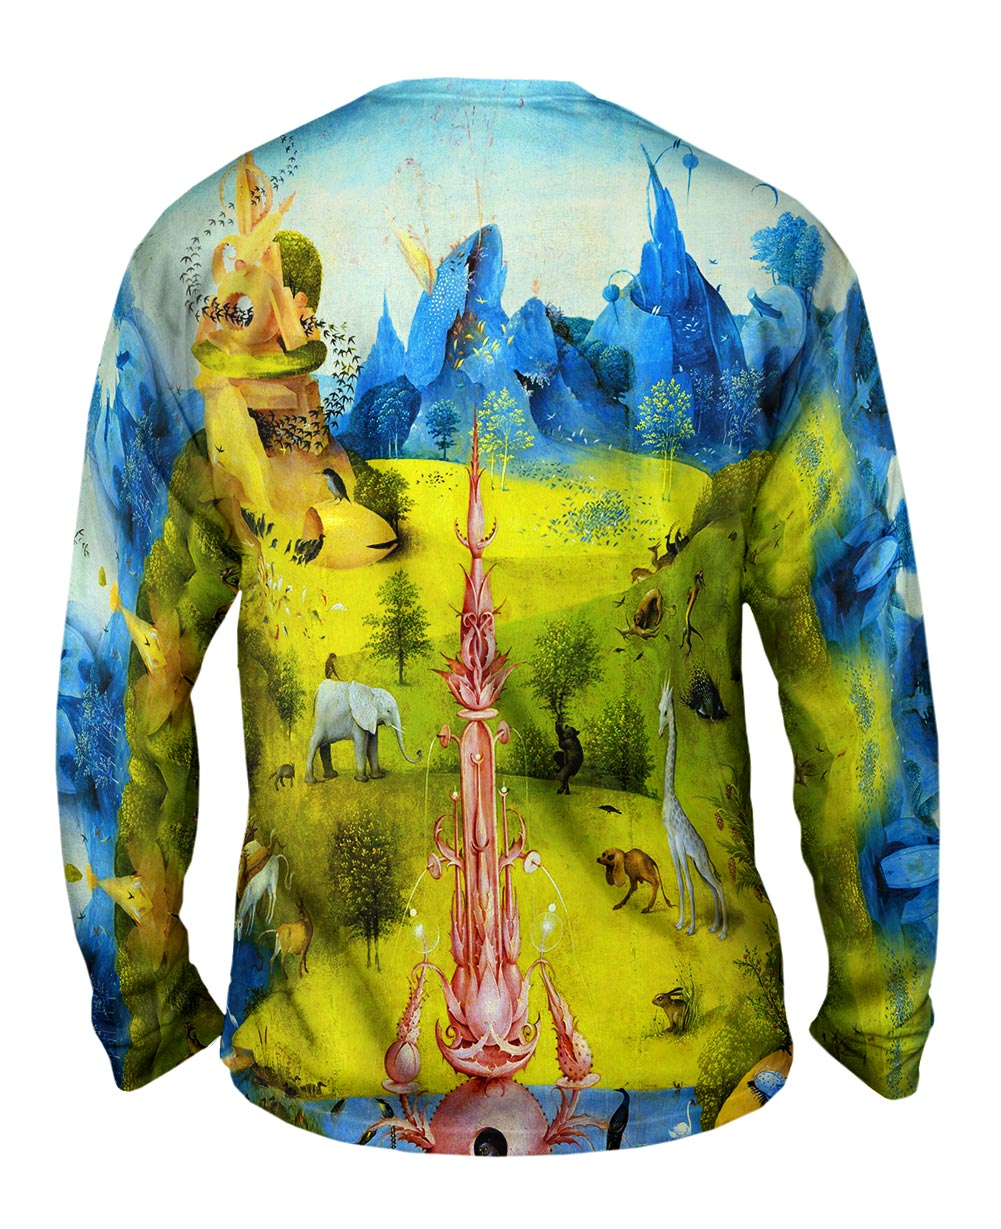 Yizzam Hieronymus Bosch The Garden Of Earthly Delights 03 Mens Long Sleeve